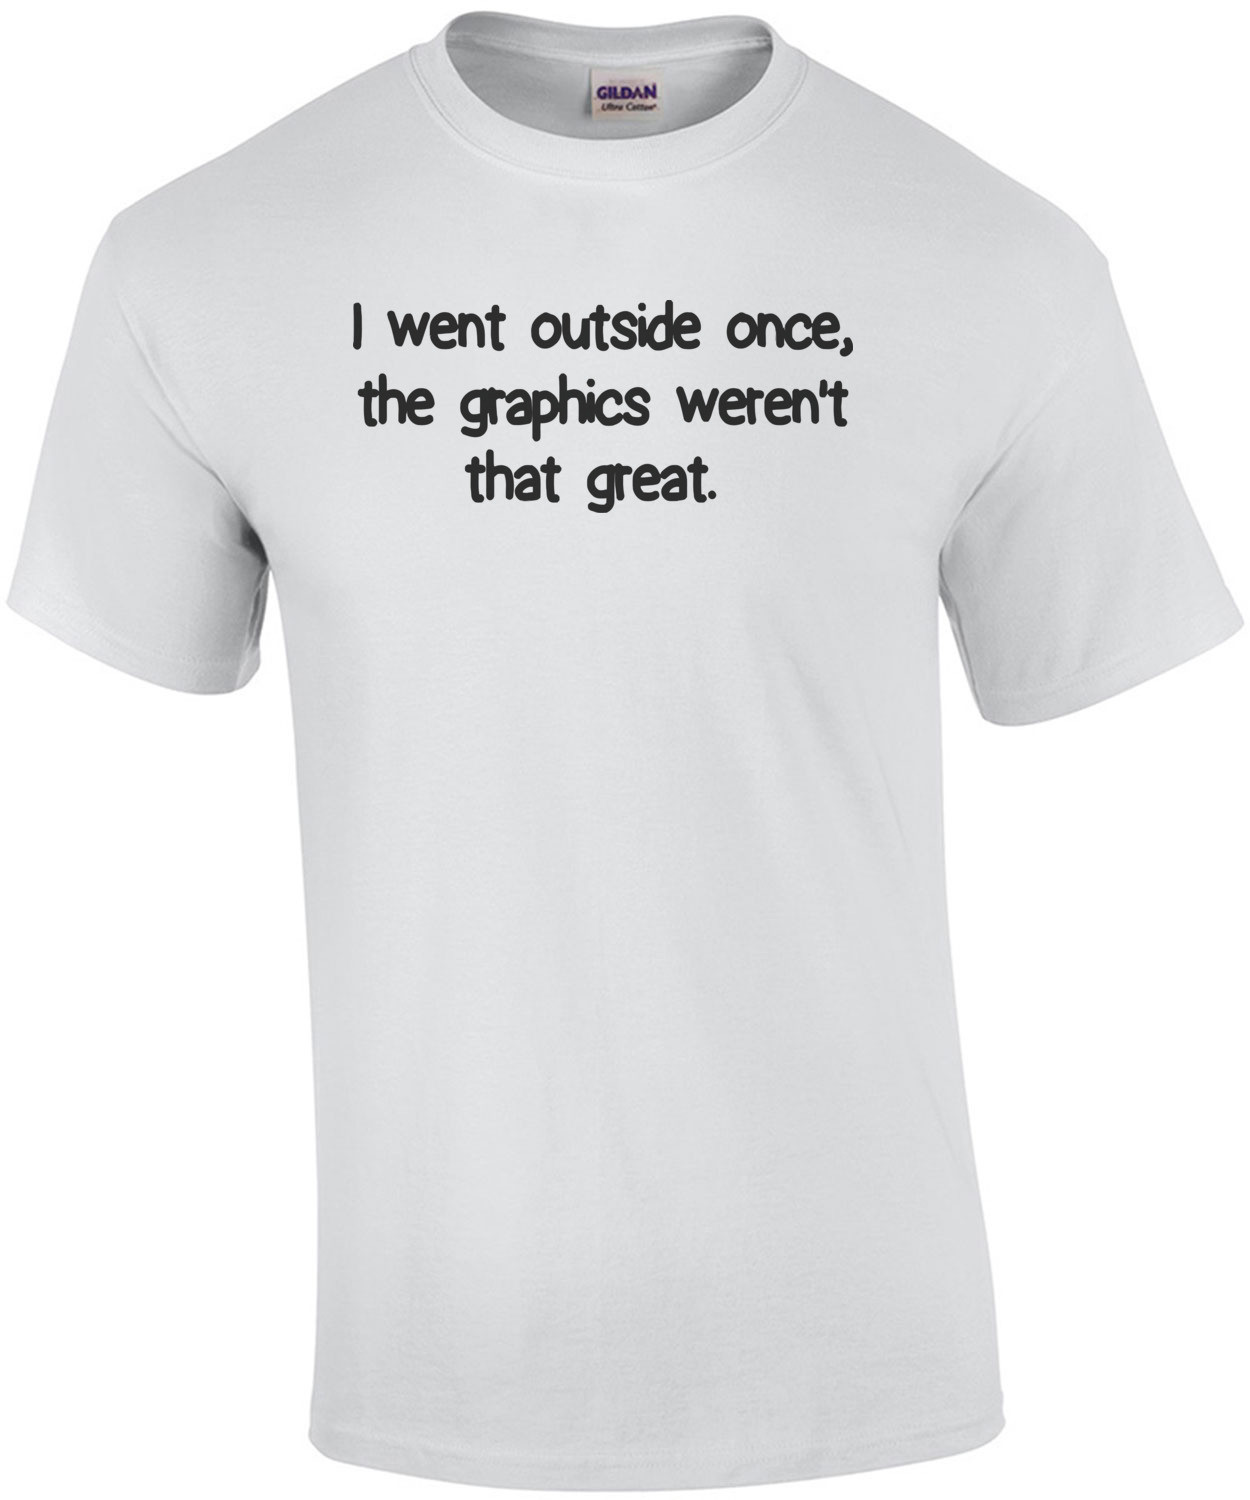 I Went Outside Once, The Graphics Werent That Great Shirt